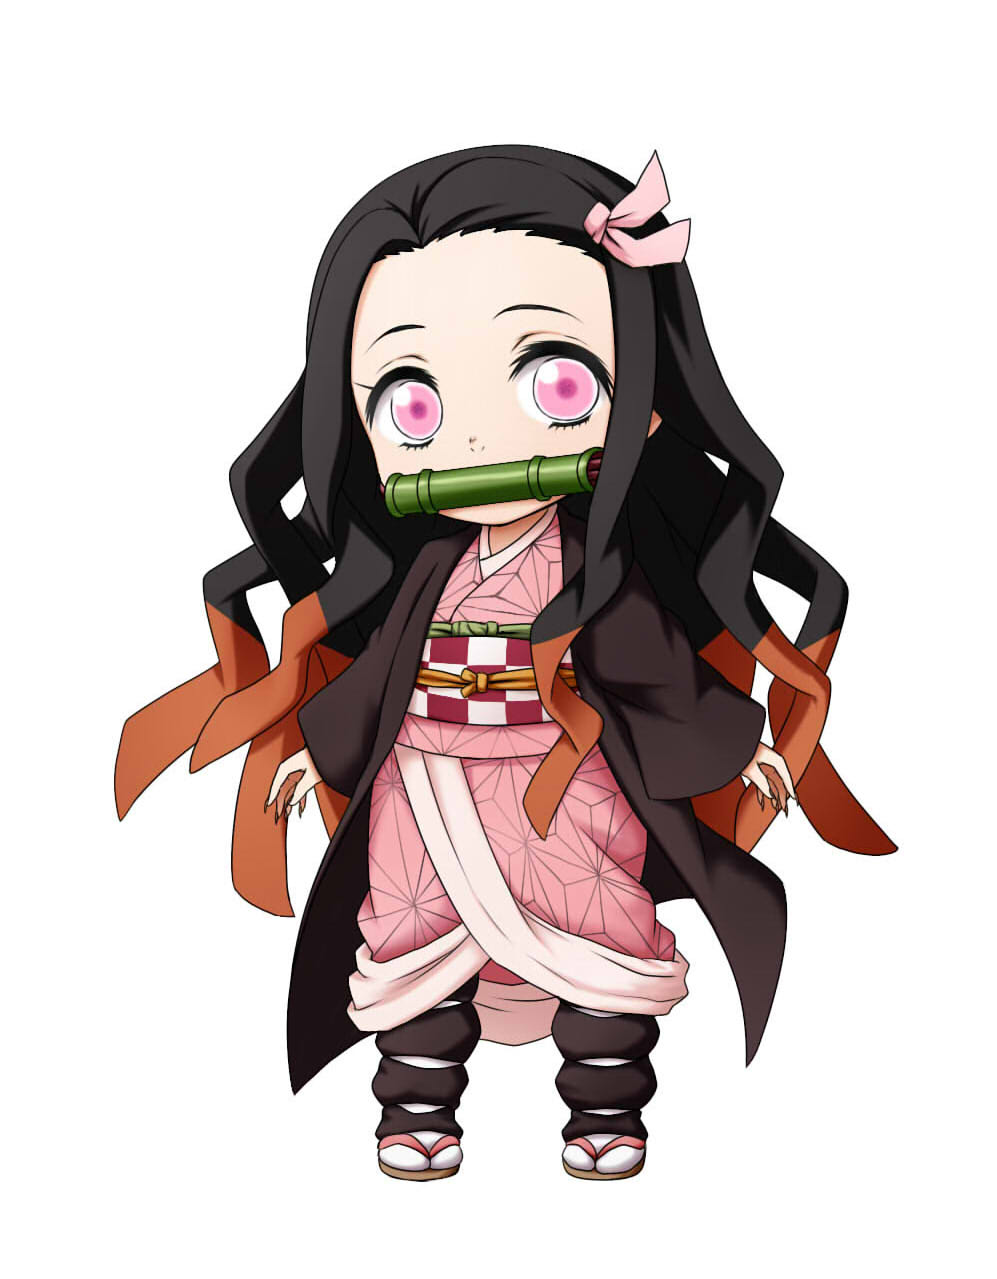 1girl bamboo bangs bit_gag black_hair brown_footwear brown_hair checkered chibi commentary_request fingernails forehead full_body gag hair_ribbon highres japanese_clothes kamado_nezuko kimetsu_no_yaiba kimono kuena long_fingernails long_hair long_sleeves looking_at_viewer mouth_hold multicolored_hair obi open_clothes parted_bangs pink_eyes pink_kimono pink_ribbon ribbon sash sharp_fingernails simple_background sleeves_past_wrists solo standing two-tone_hair very_long_hair white_background white_legwear wide_sleeves zouri